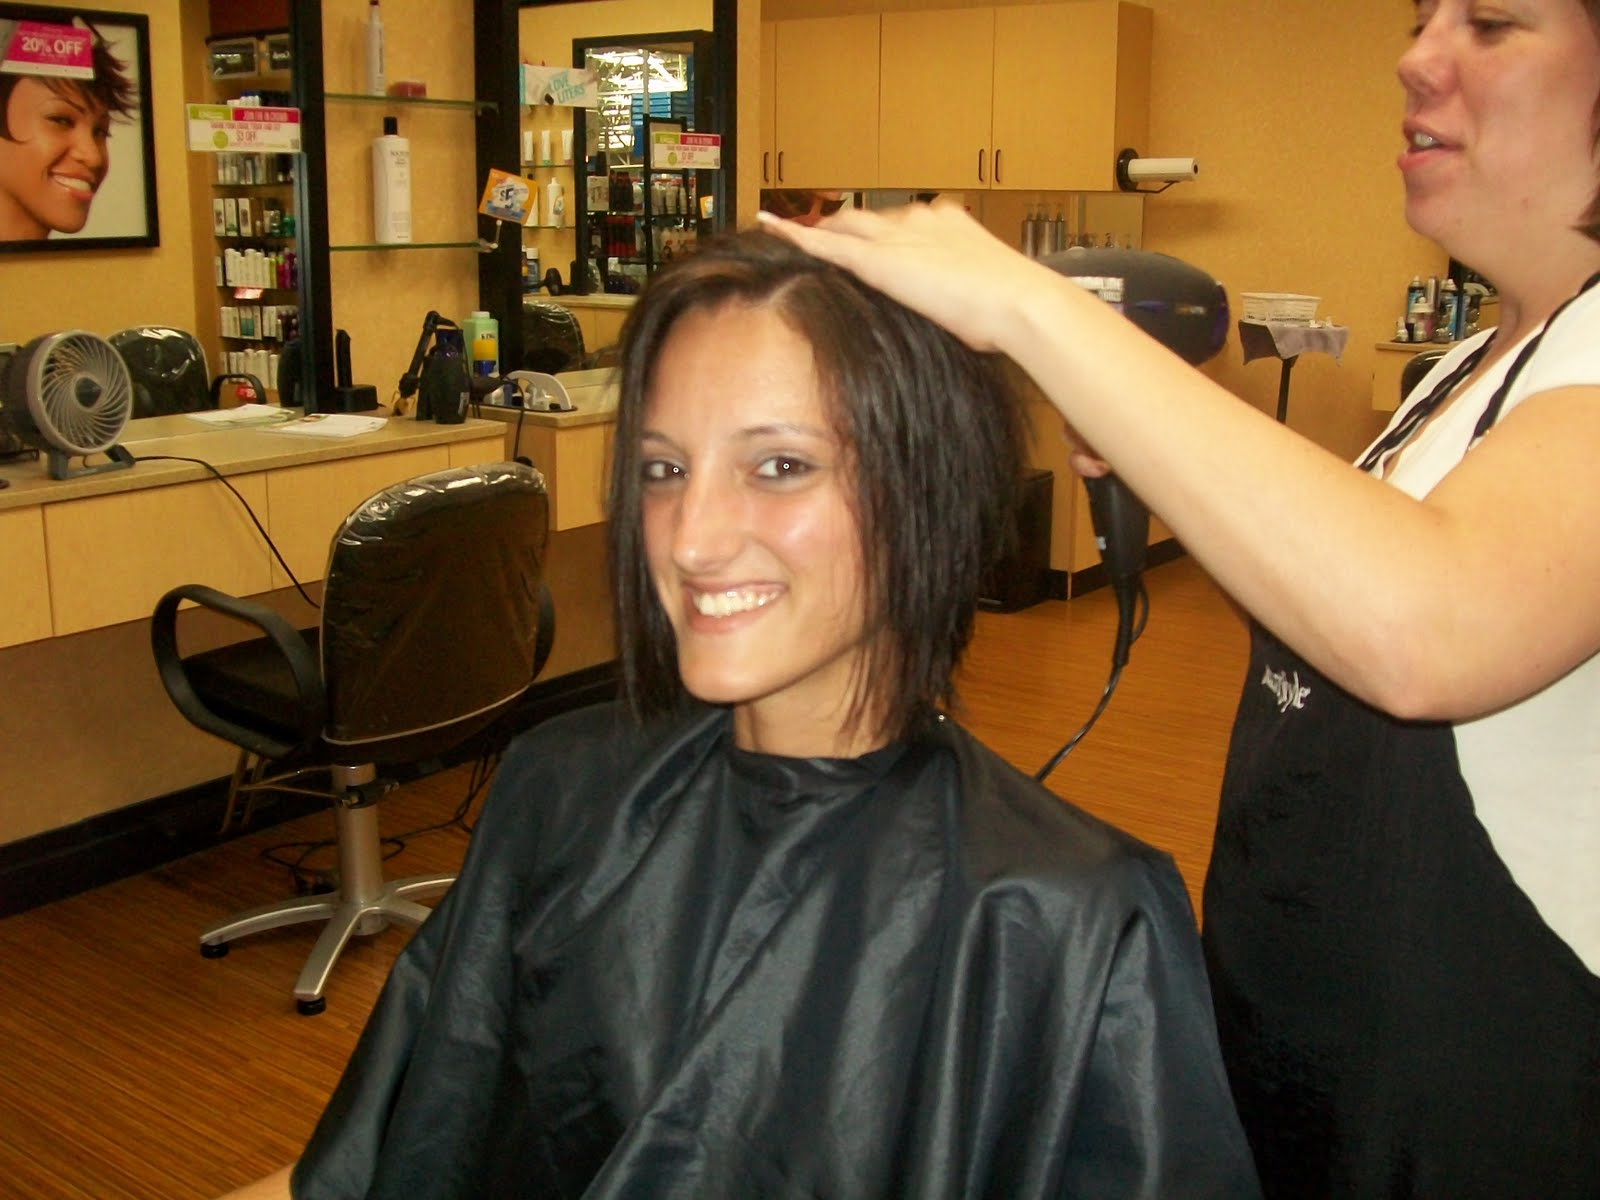 Smart Style Hair: My Three Sons And A Baby!: Smart Style Salon! The Best